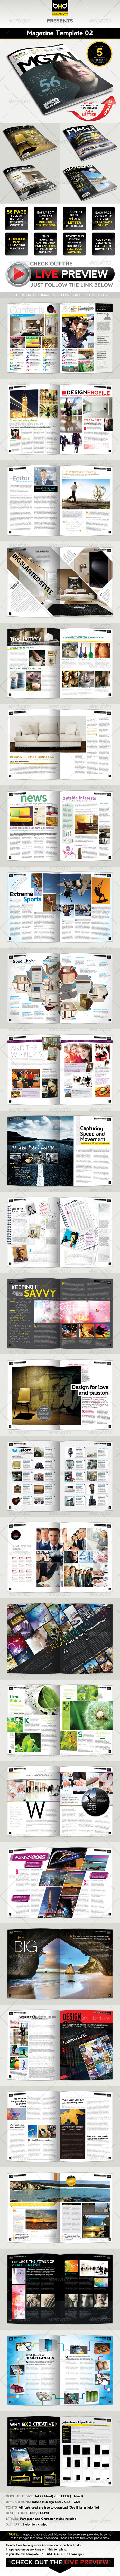 Magazine Template – InDesign 56 Page Layout